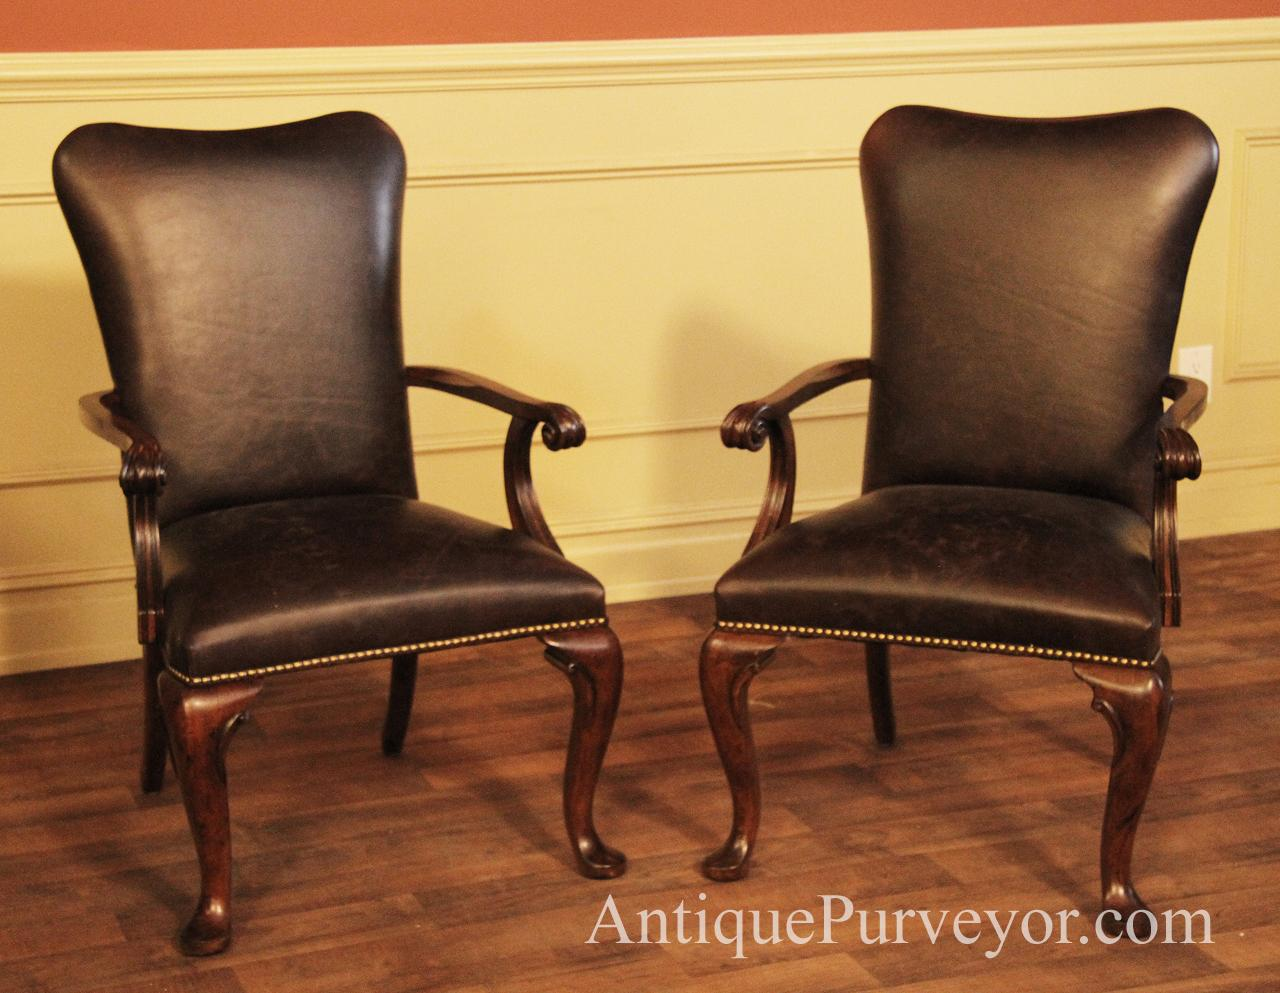 Attrayant Queen Anne Leather Arm Chairs With Camel Back And Brass Nail Trim